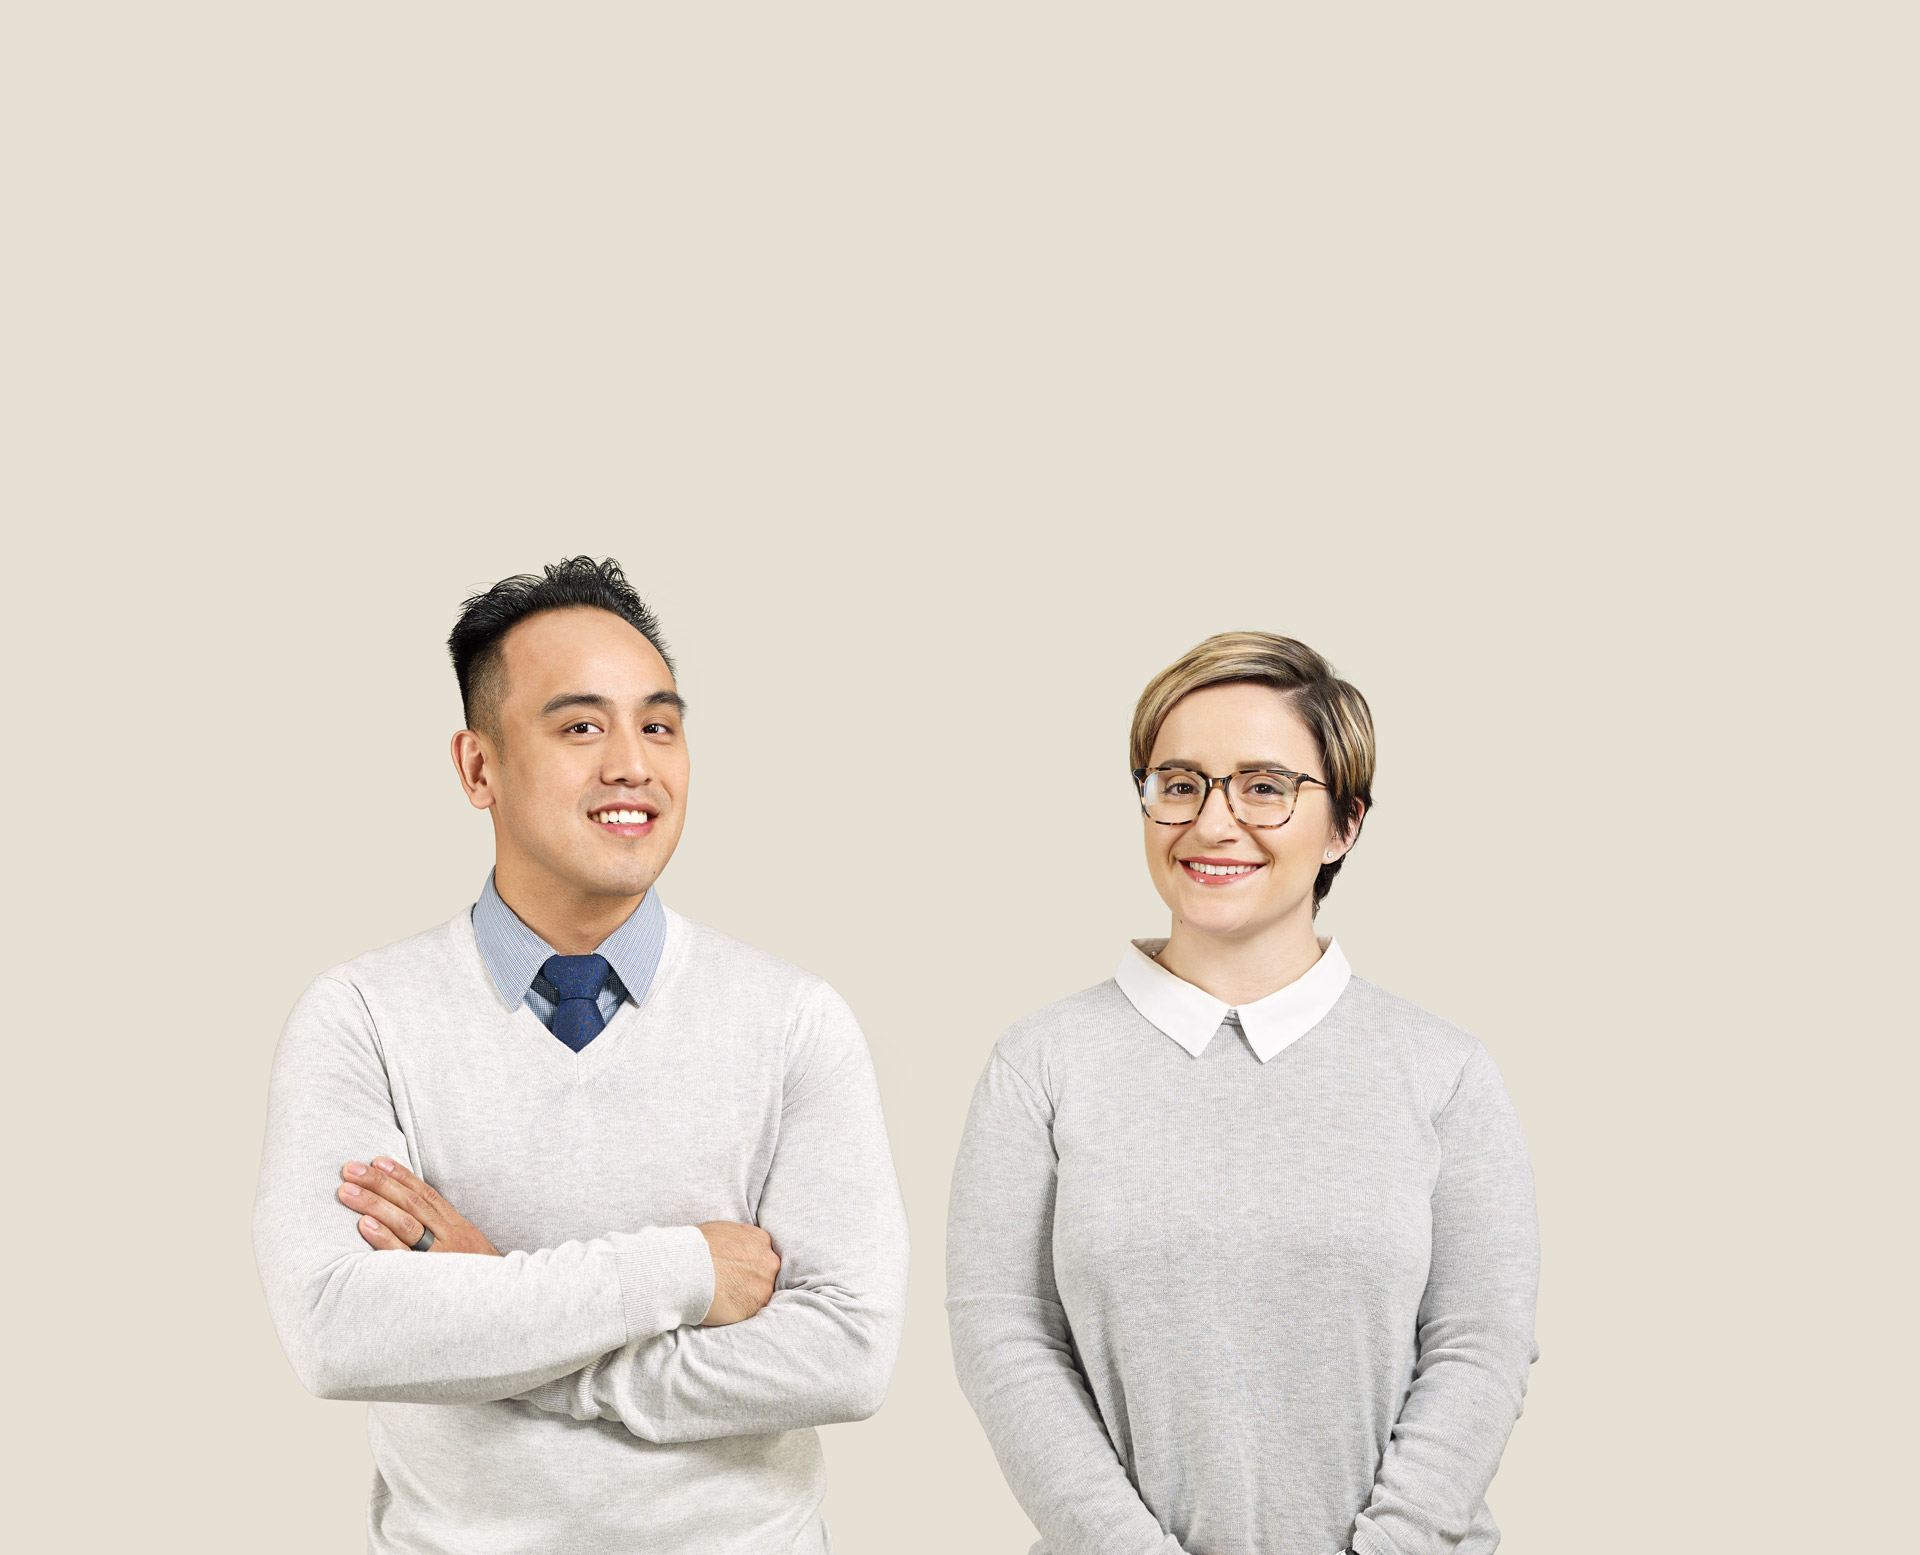 Professional bookkeepers ready to help you